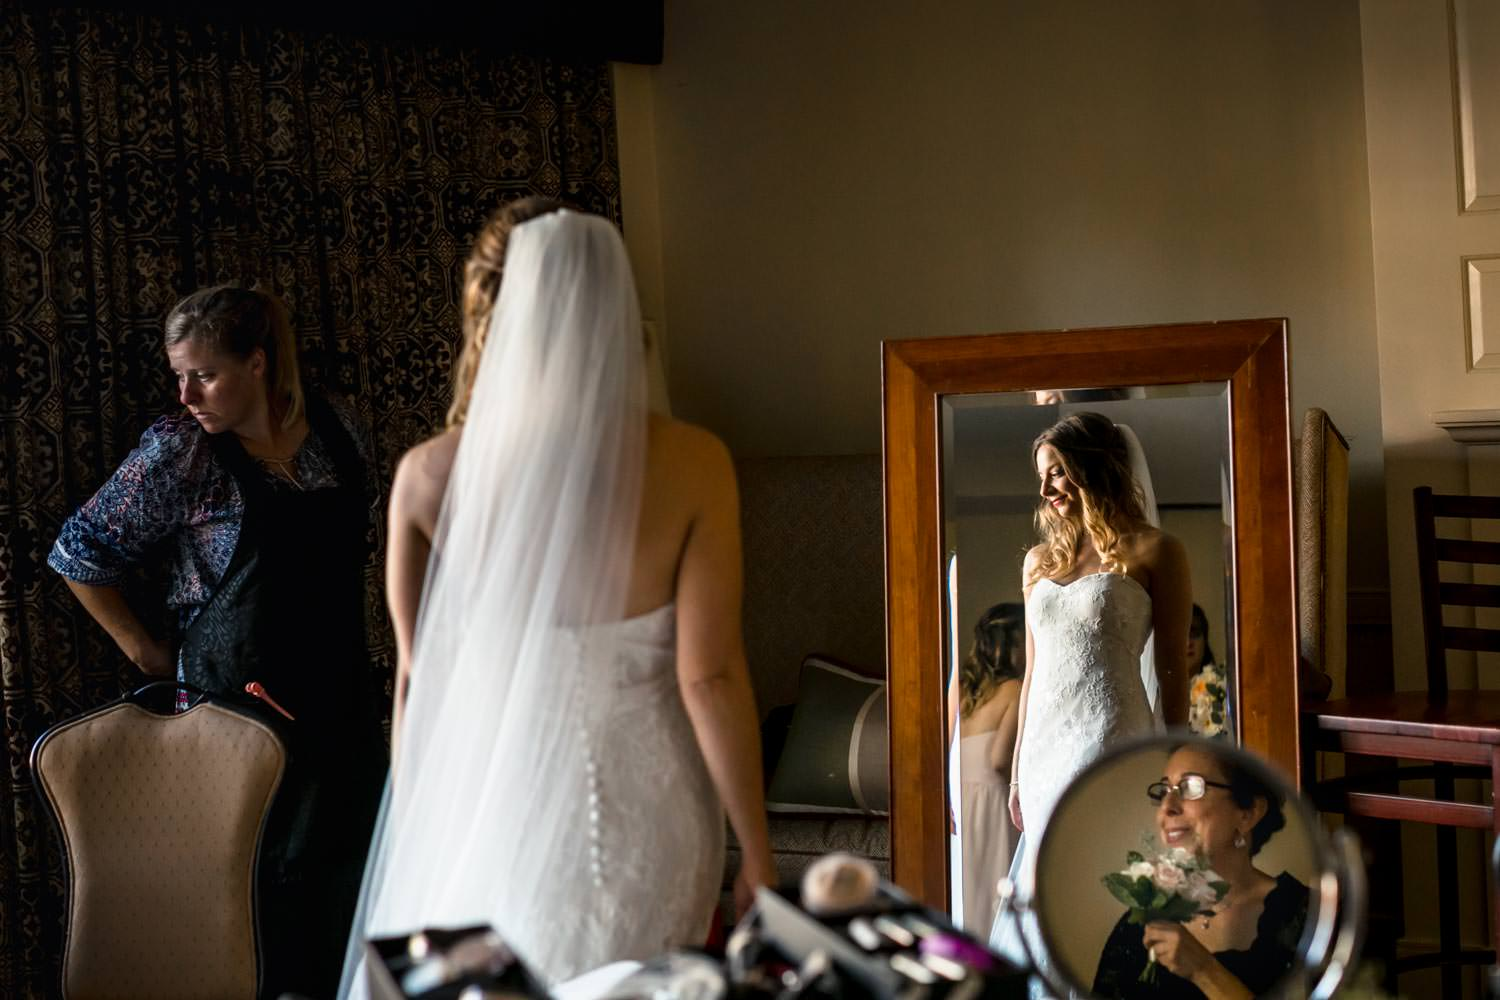 vermont wedding photographer captures bride in mirror with vail